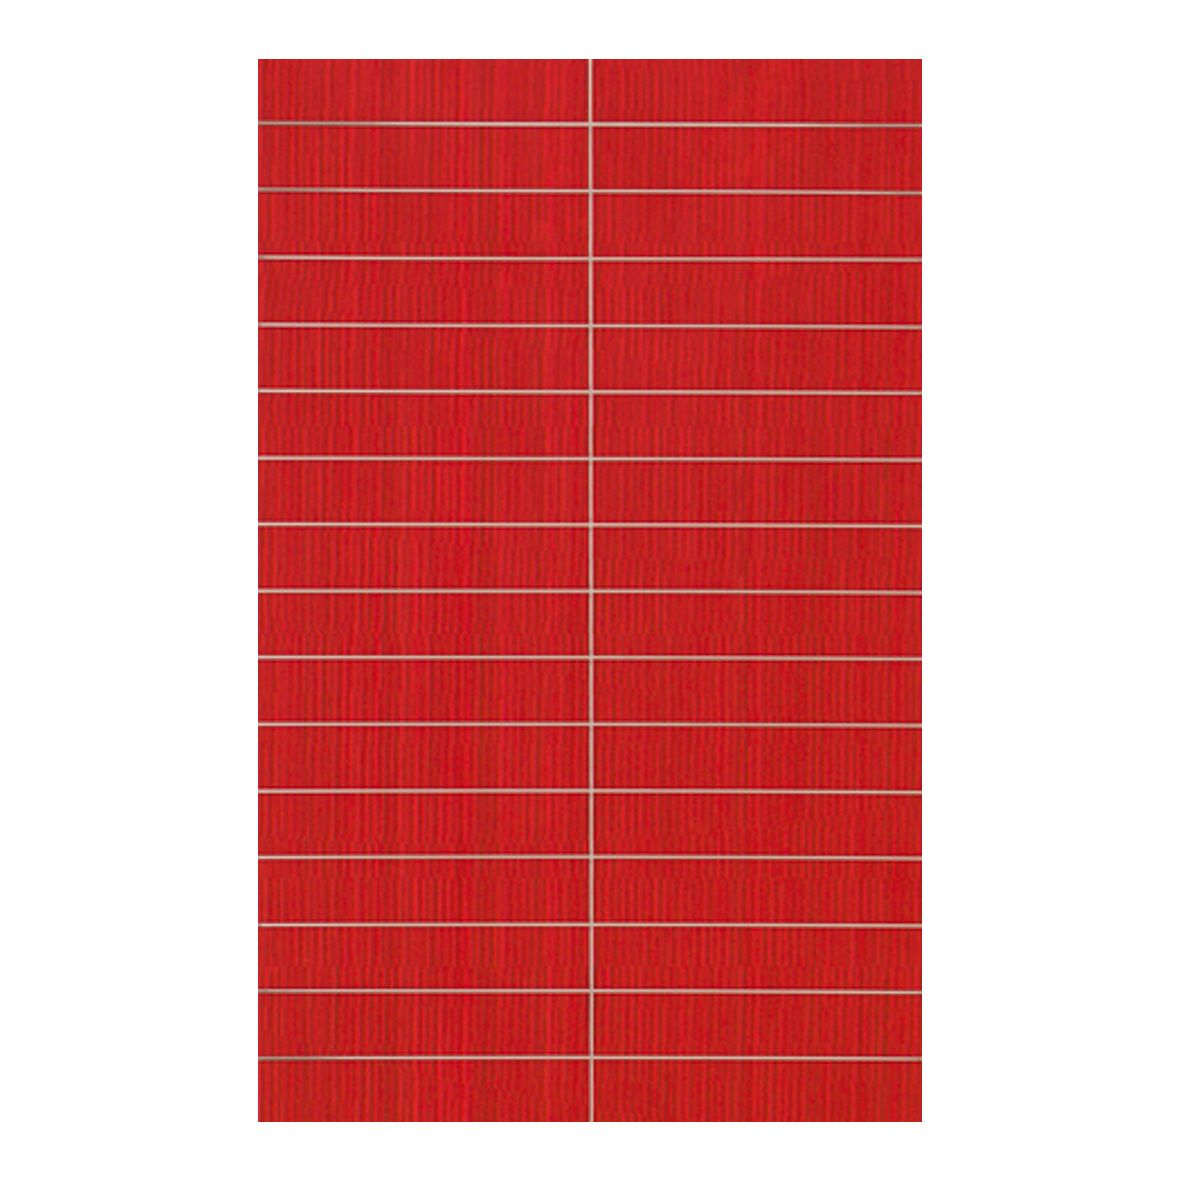 Recer shell red mosaic decor notes pinterest mosaics and shell ceramic tile distributors suppliers of the gemini wall floor tile collection dailygadgetfo Gallery